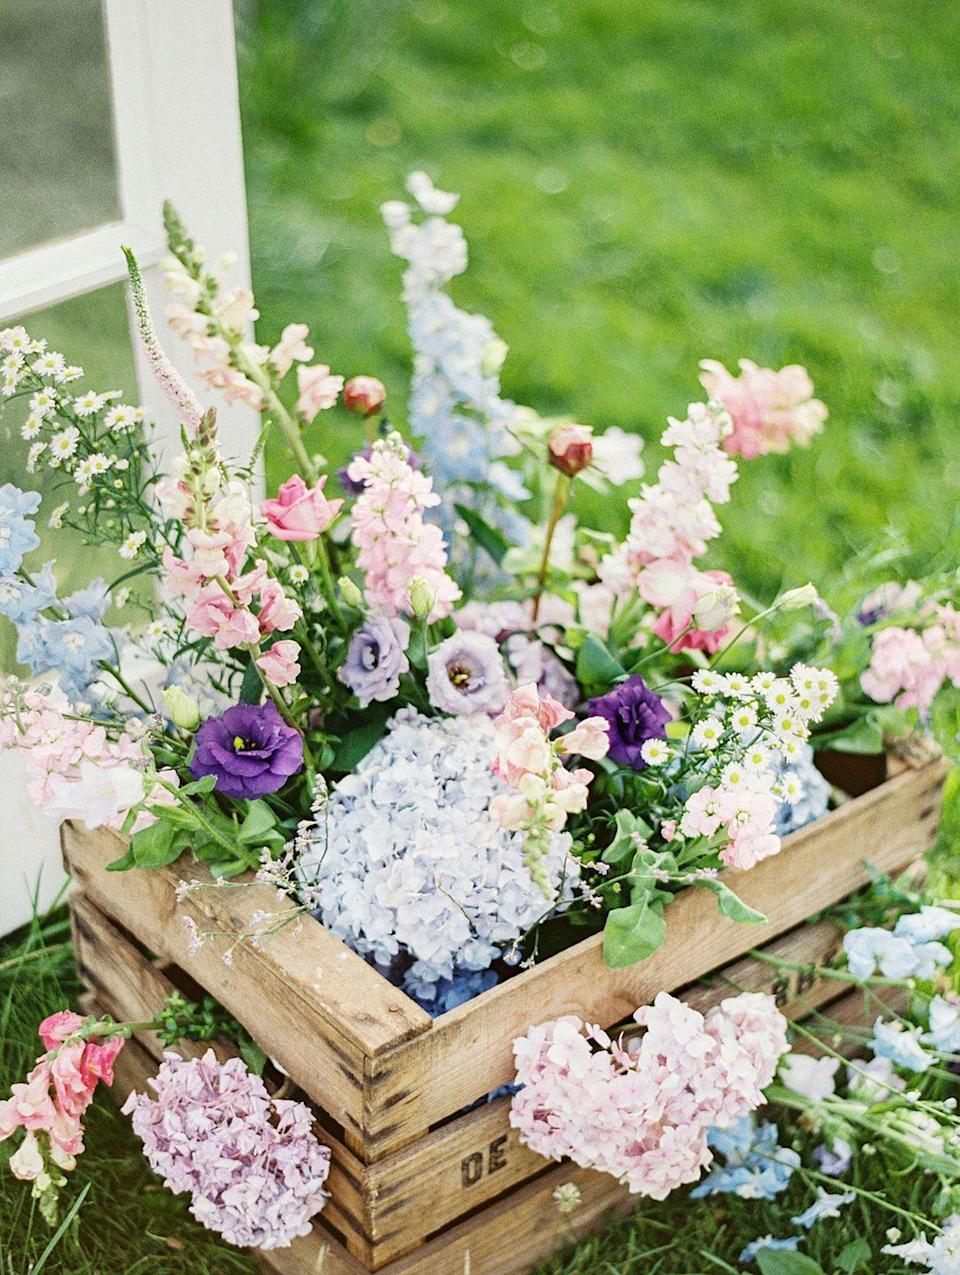 """<p>The best way to glamorize a rustic crate? Flowers. Hello, one-and-done Easter centerpiece.</p><p><a rel=""""nofollow noopener"""" href=""""https://www.amazon.com/At-Home-Main-Handmade-Rustic/dp/B07MVNL9N6/"""" target=""""_blank"""" data-ylk=""""slk:SHOP CRATES"""" class=""""link rapid-noclick-resp"""">SHOP CRATES</a></p>"""